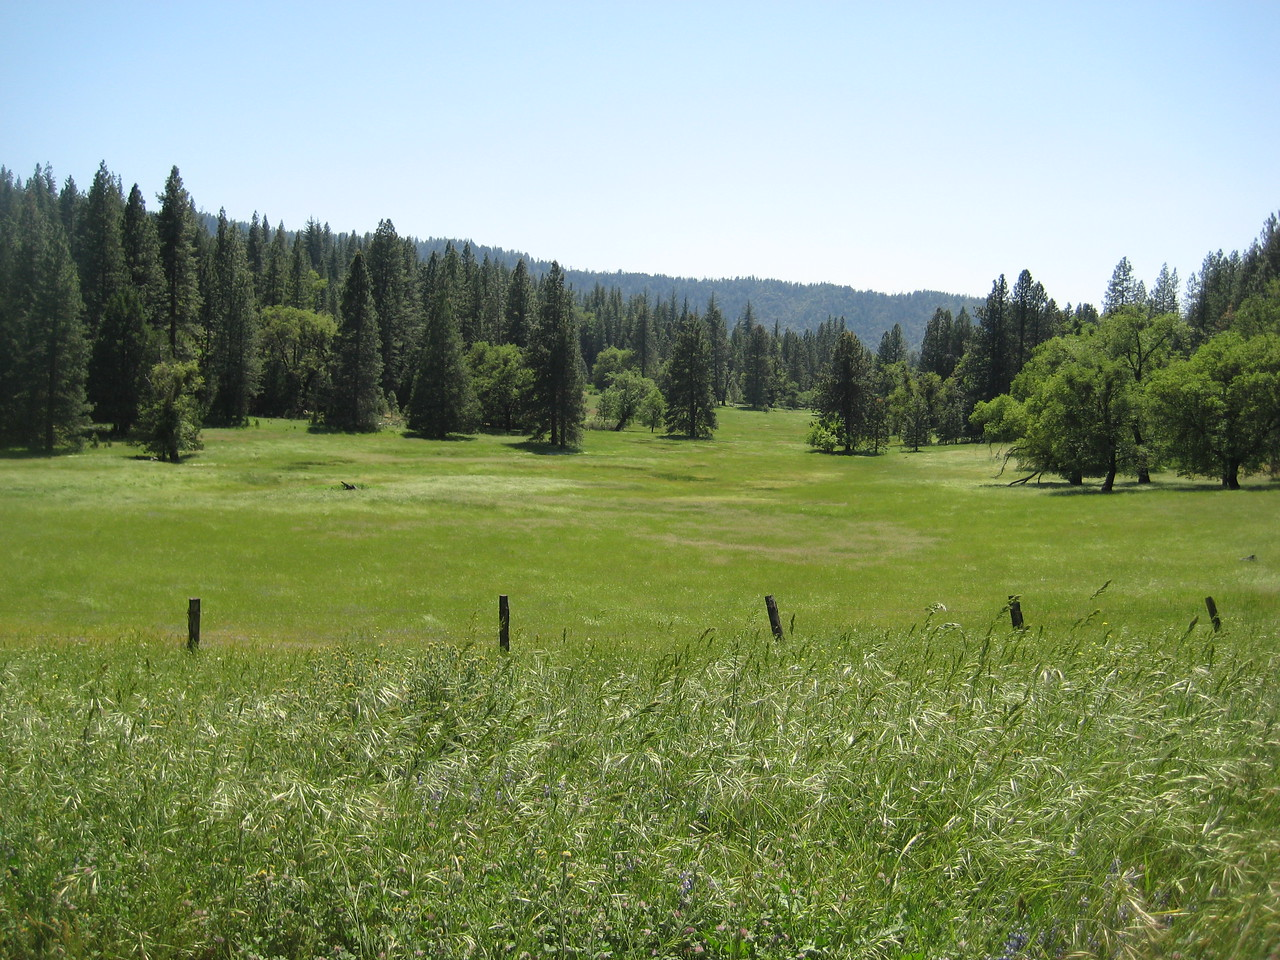 One of the many meadows we came across in the back woods.